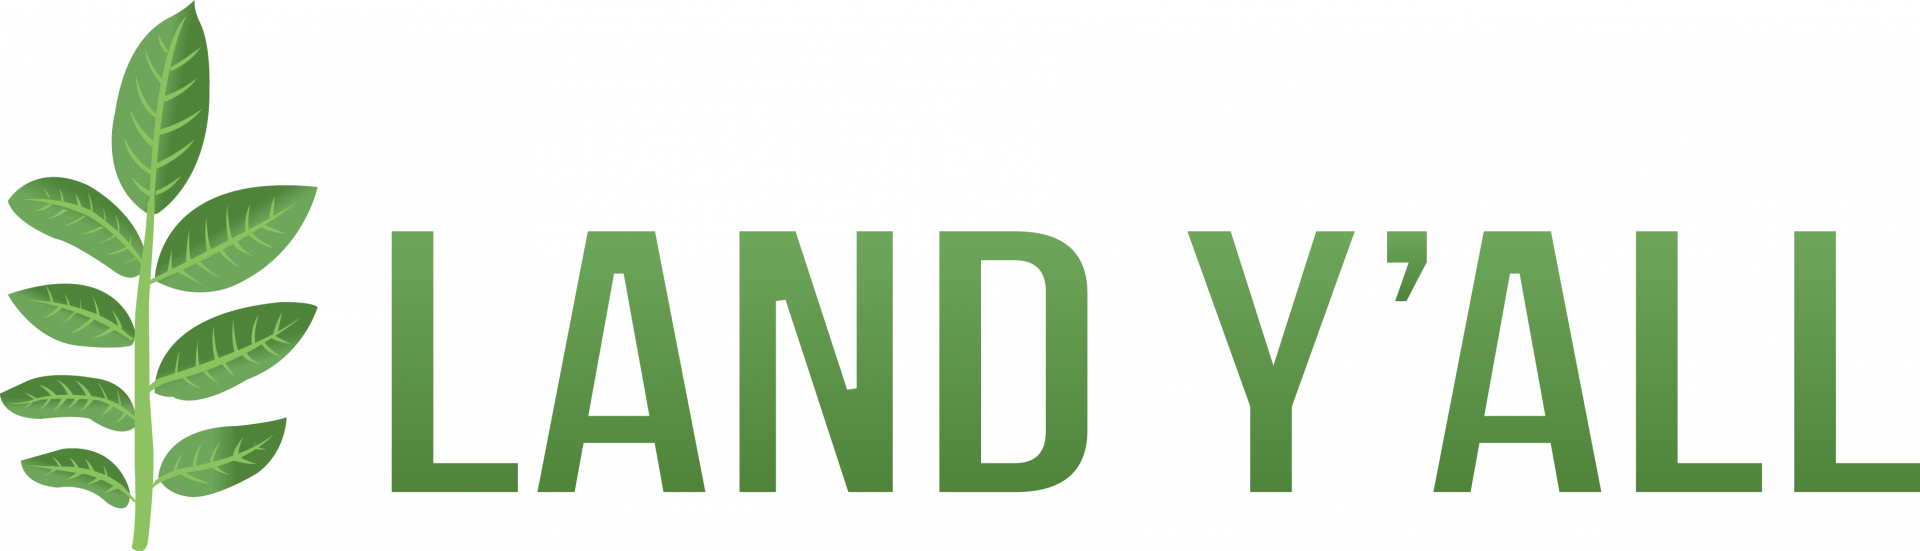 Land Y'all logo